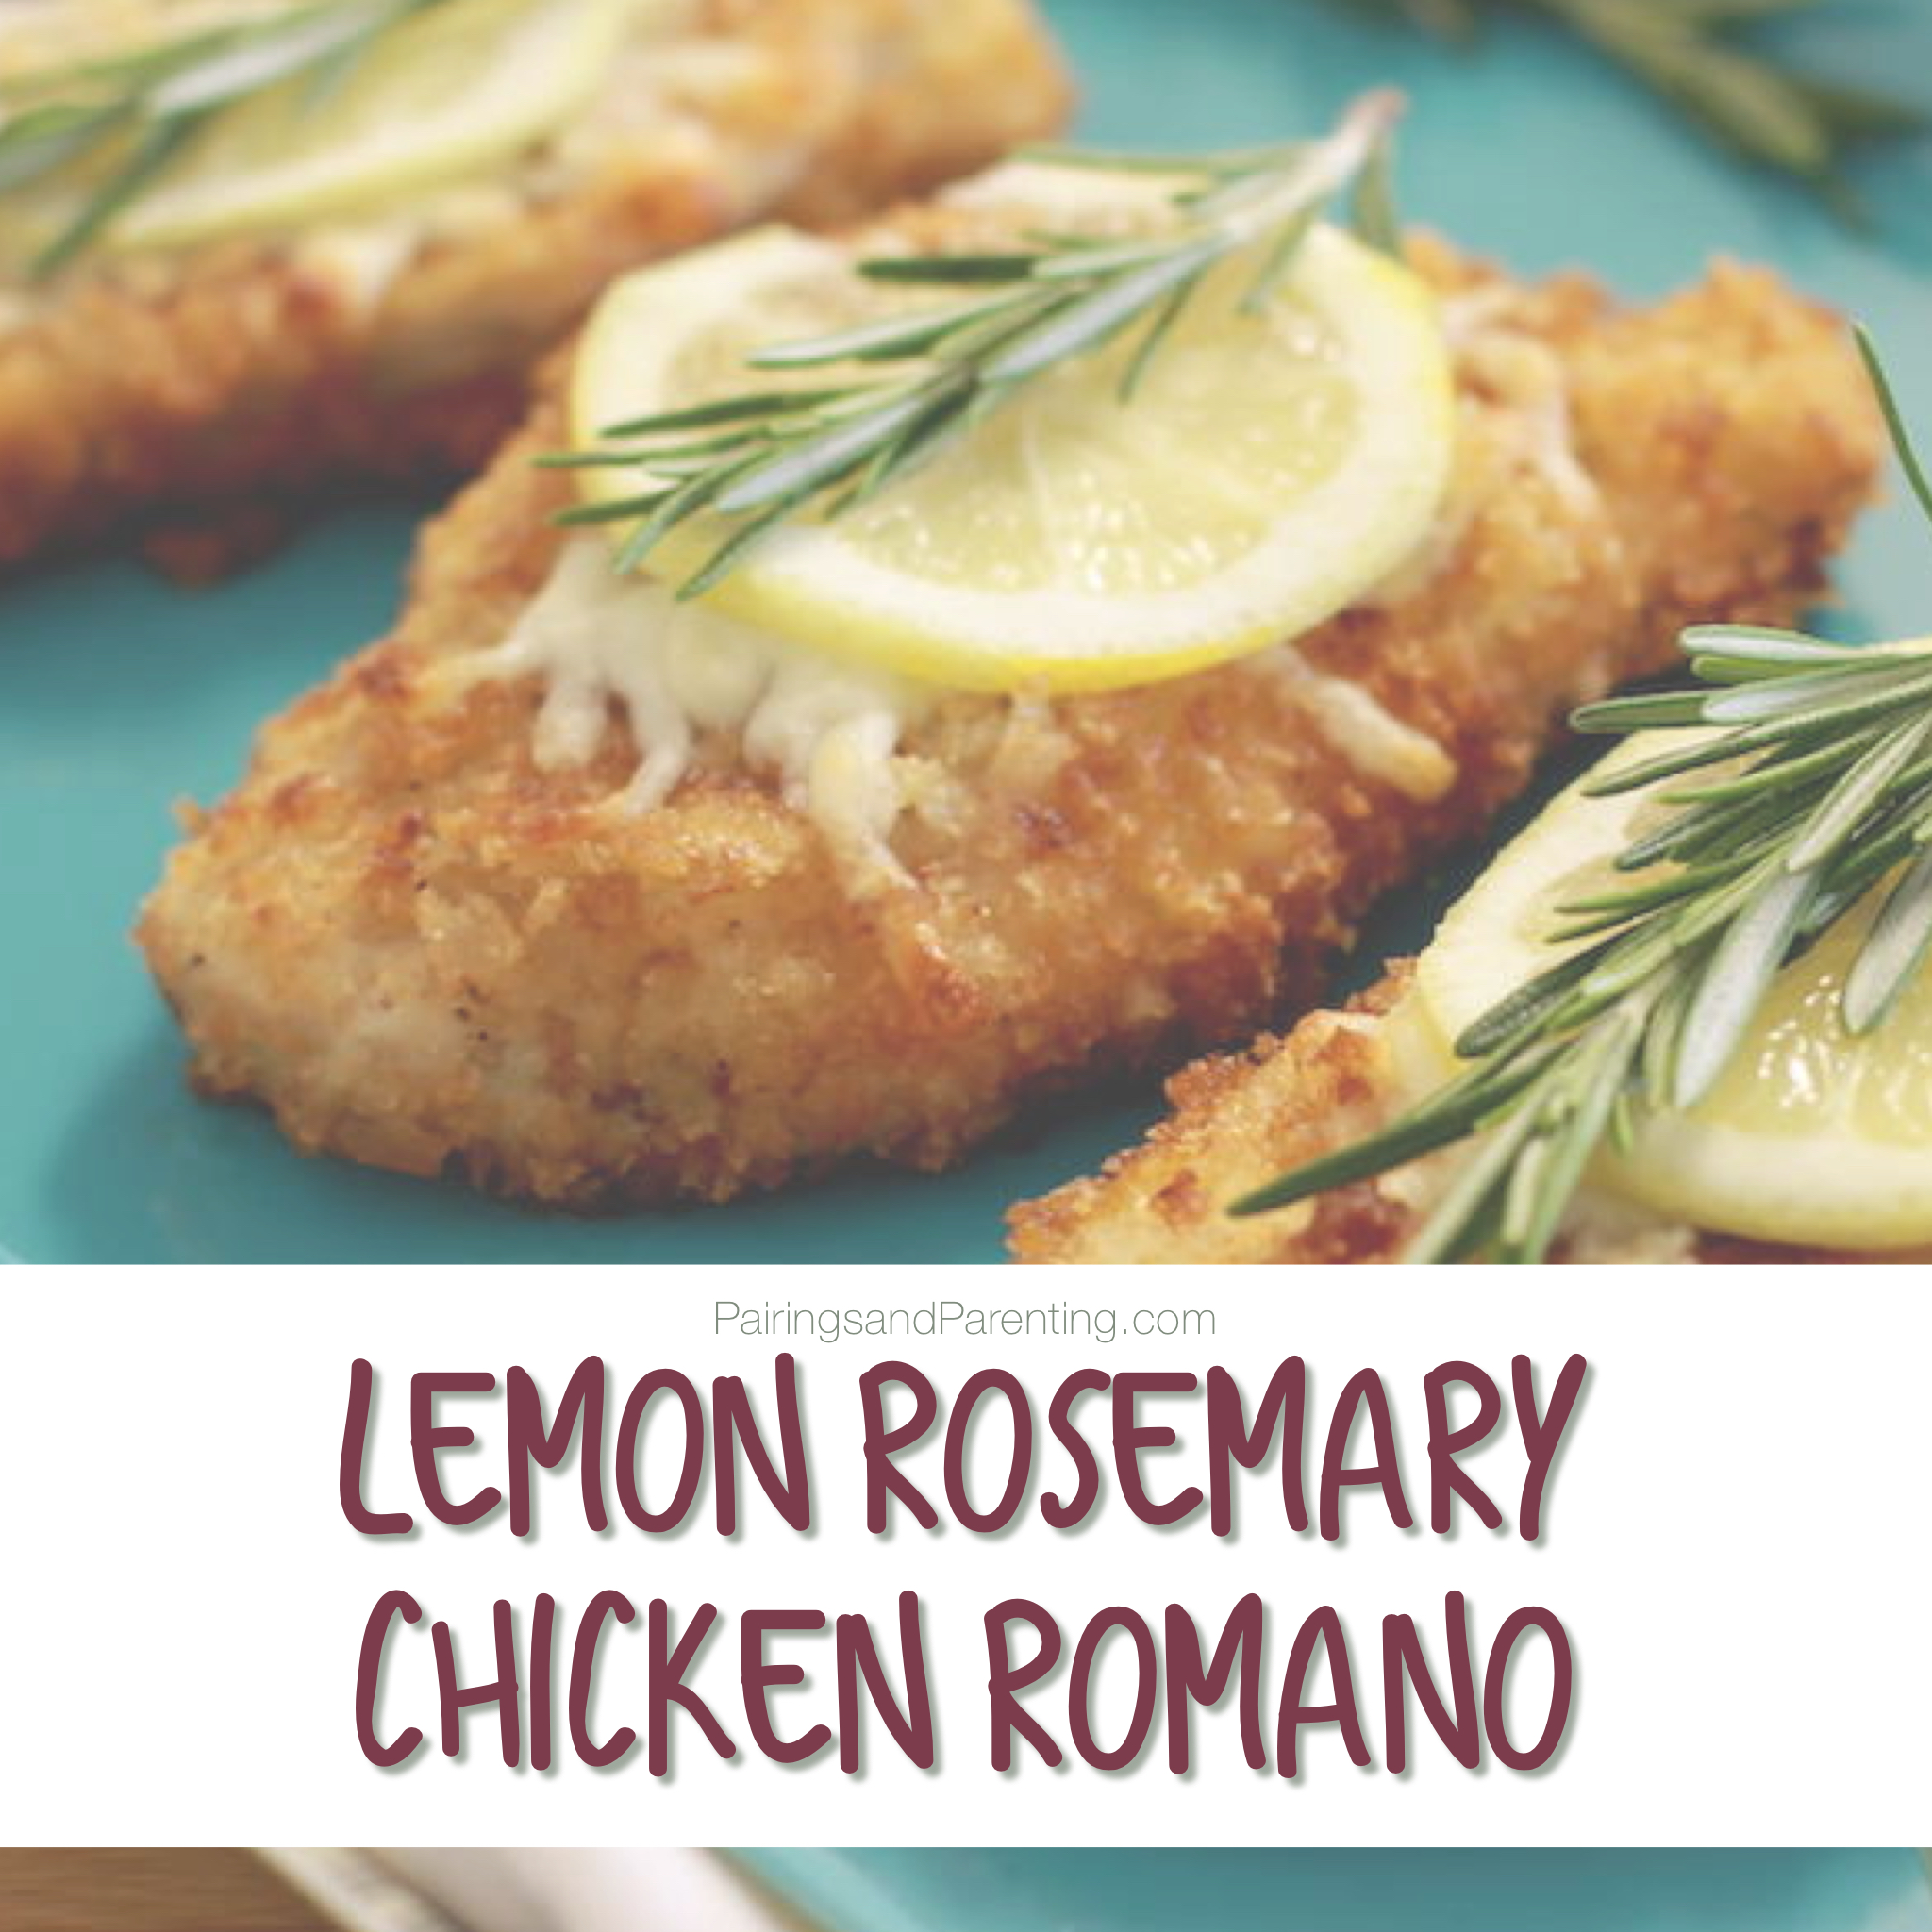 Lemon Rosemary Chicken Romano